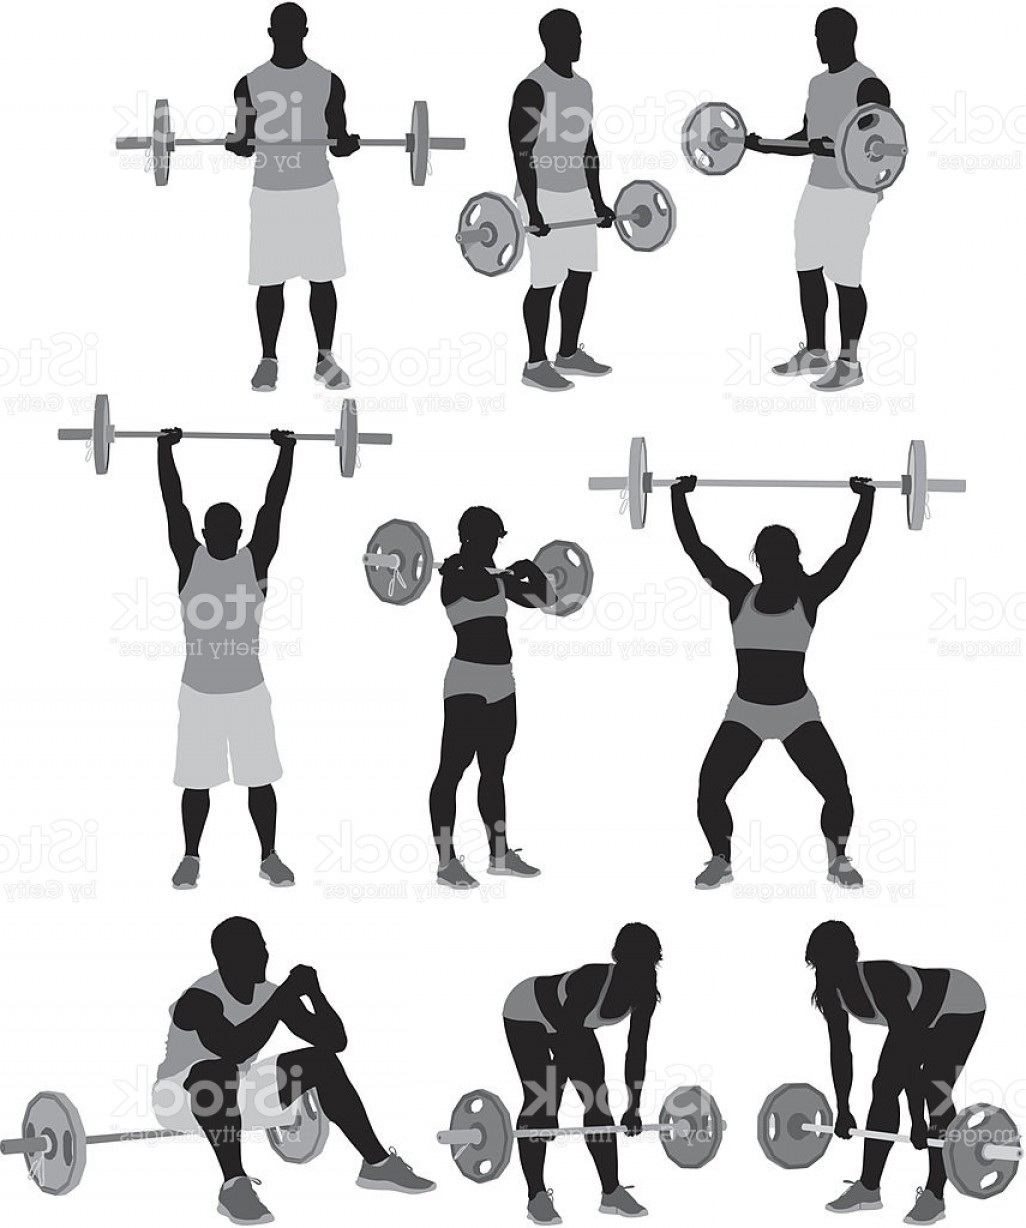 Weightlifter Vector Art: Man And Woman Weightlifting Gm